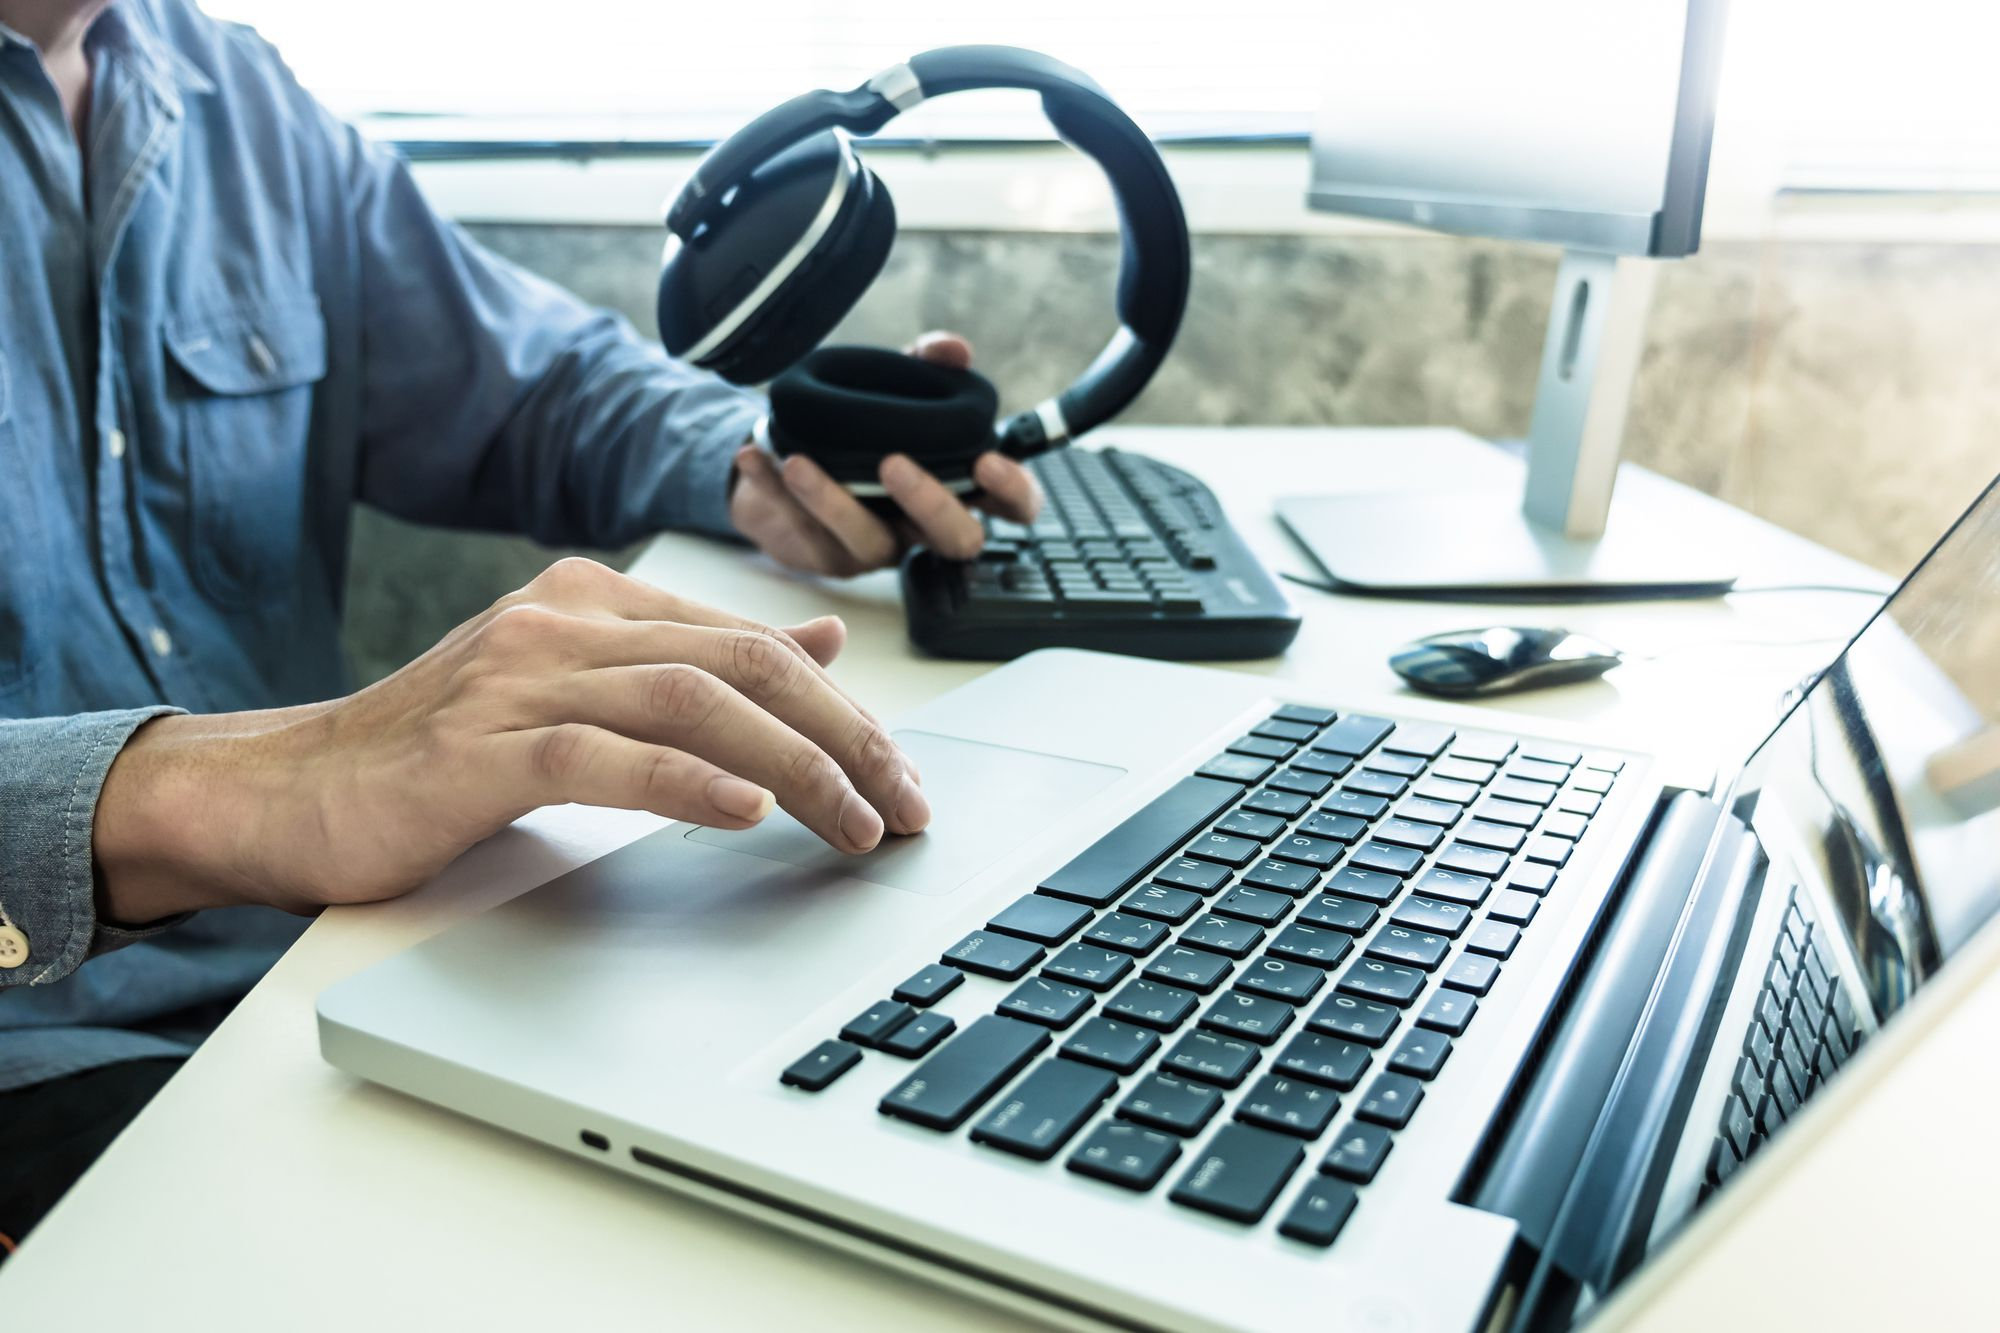 Male hands holding headphones and working on computer, Sound engineer concept